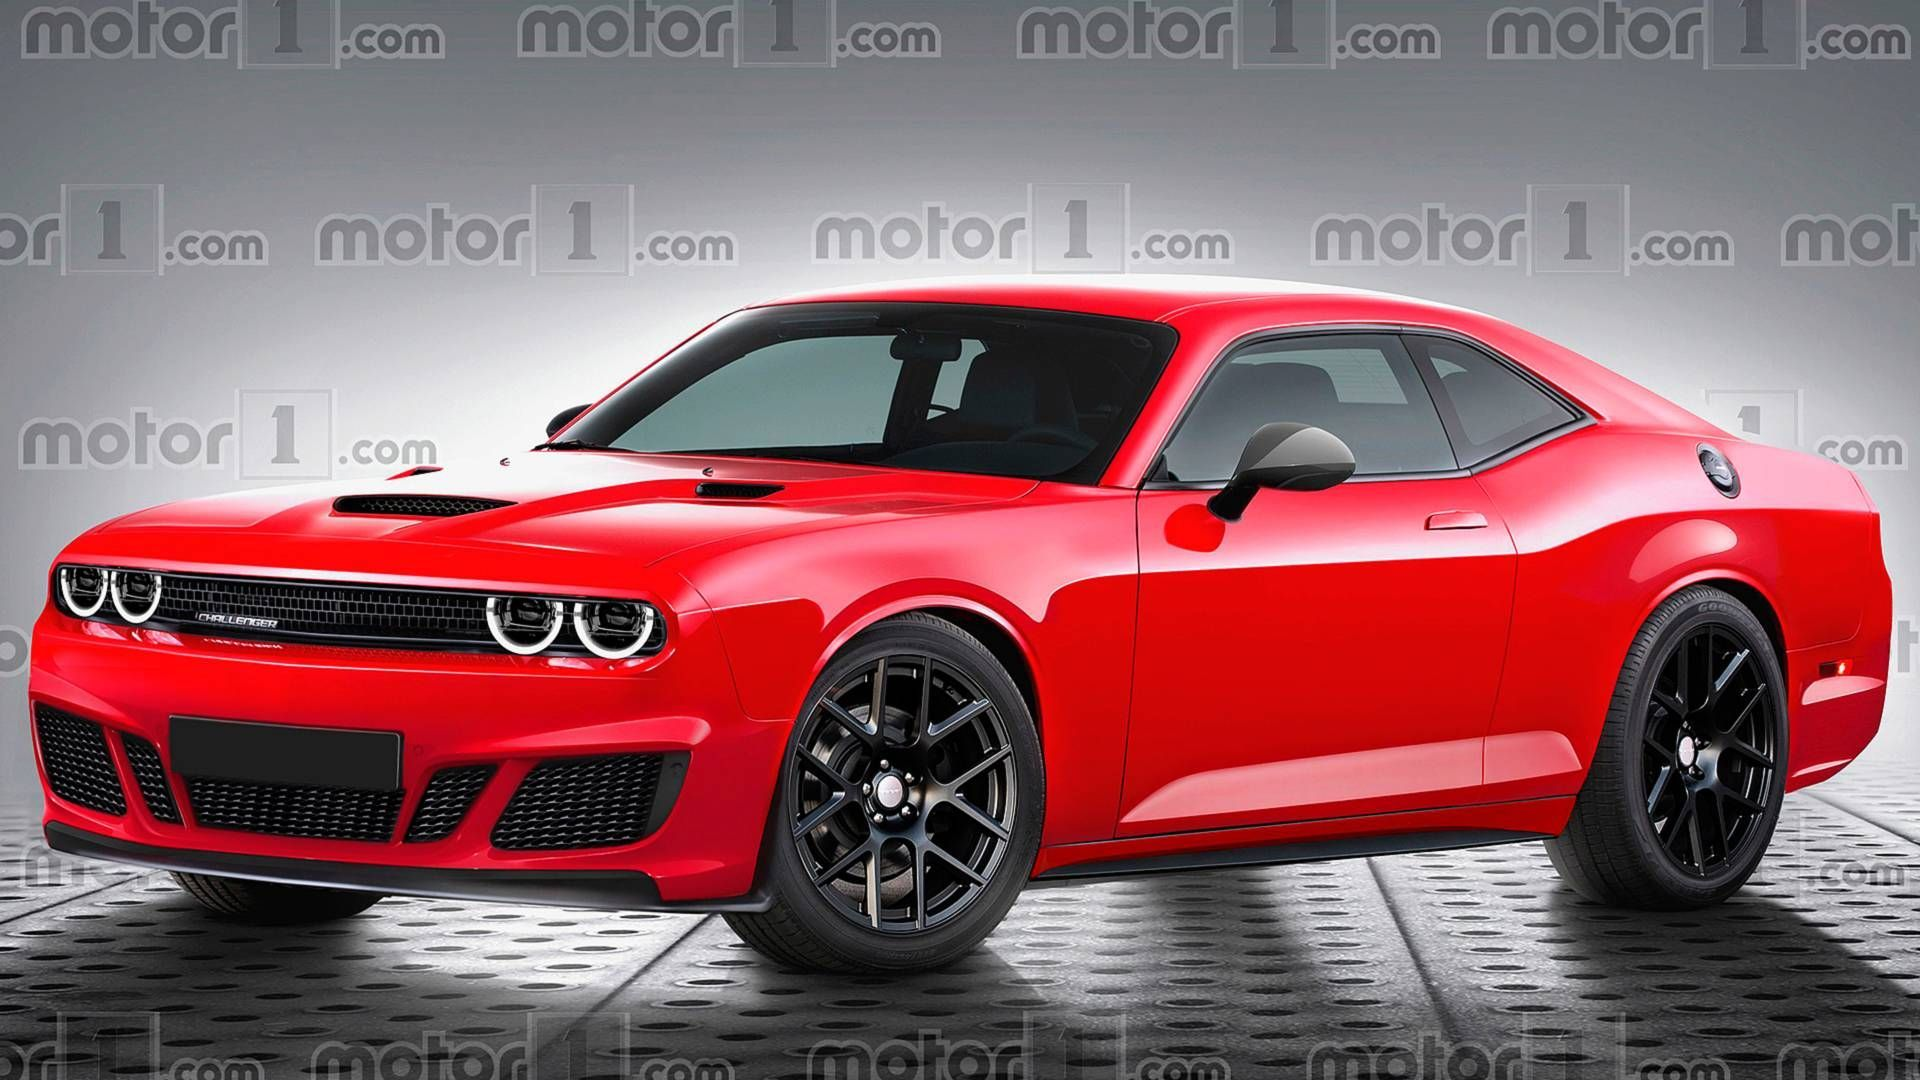 2020 Plymouth Barracuda Images